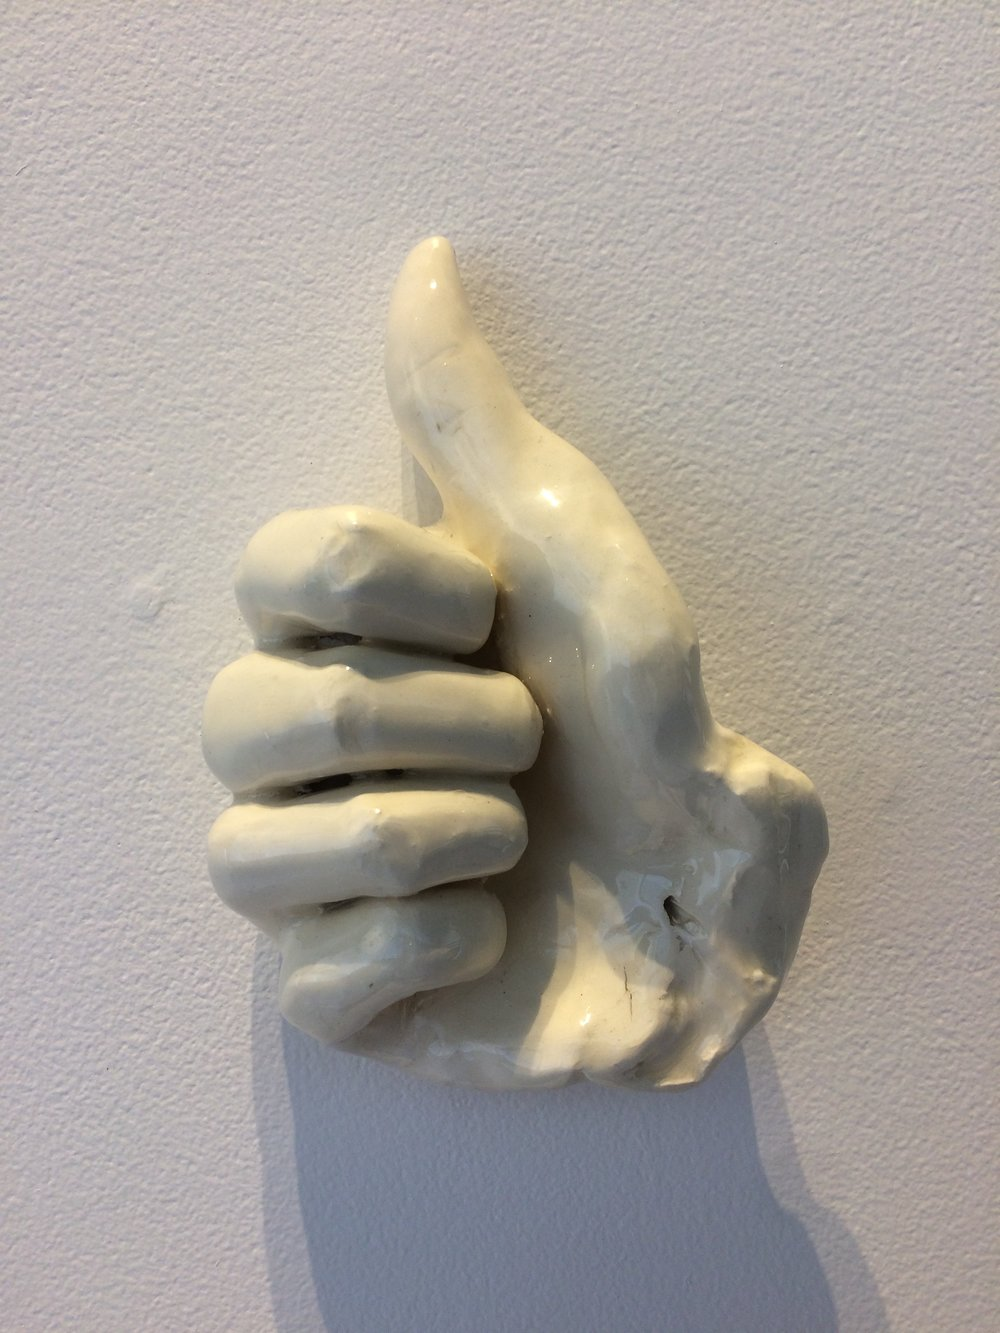 Short Hand (Thumbs Up)  ceramic  6x4.5